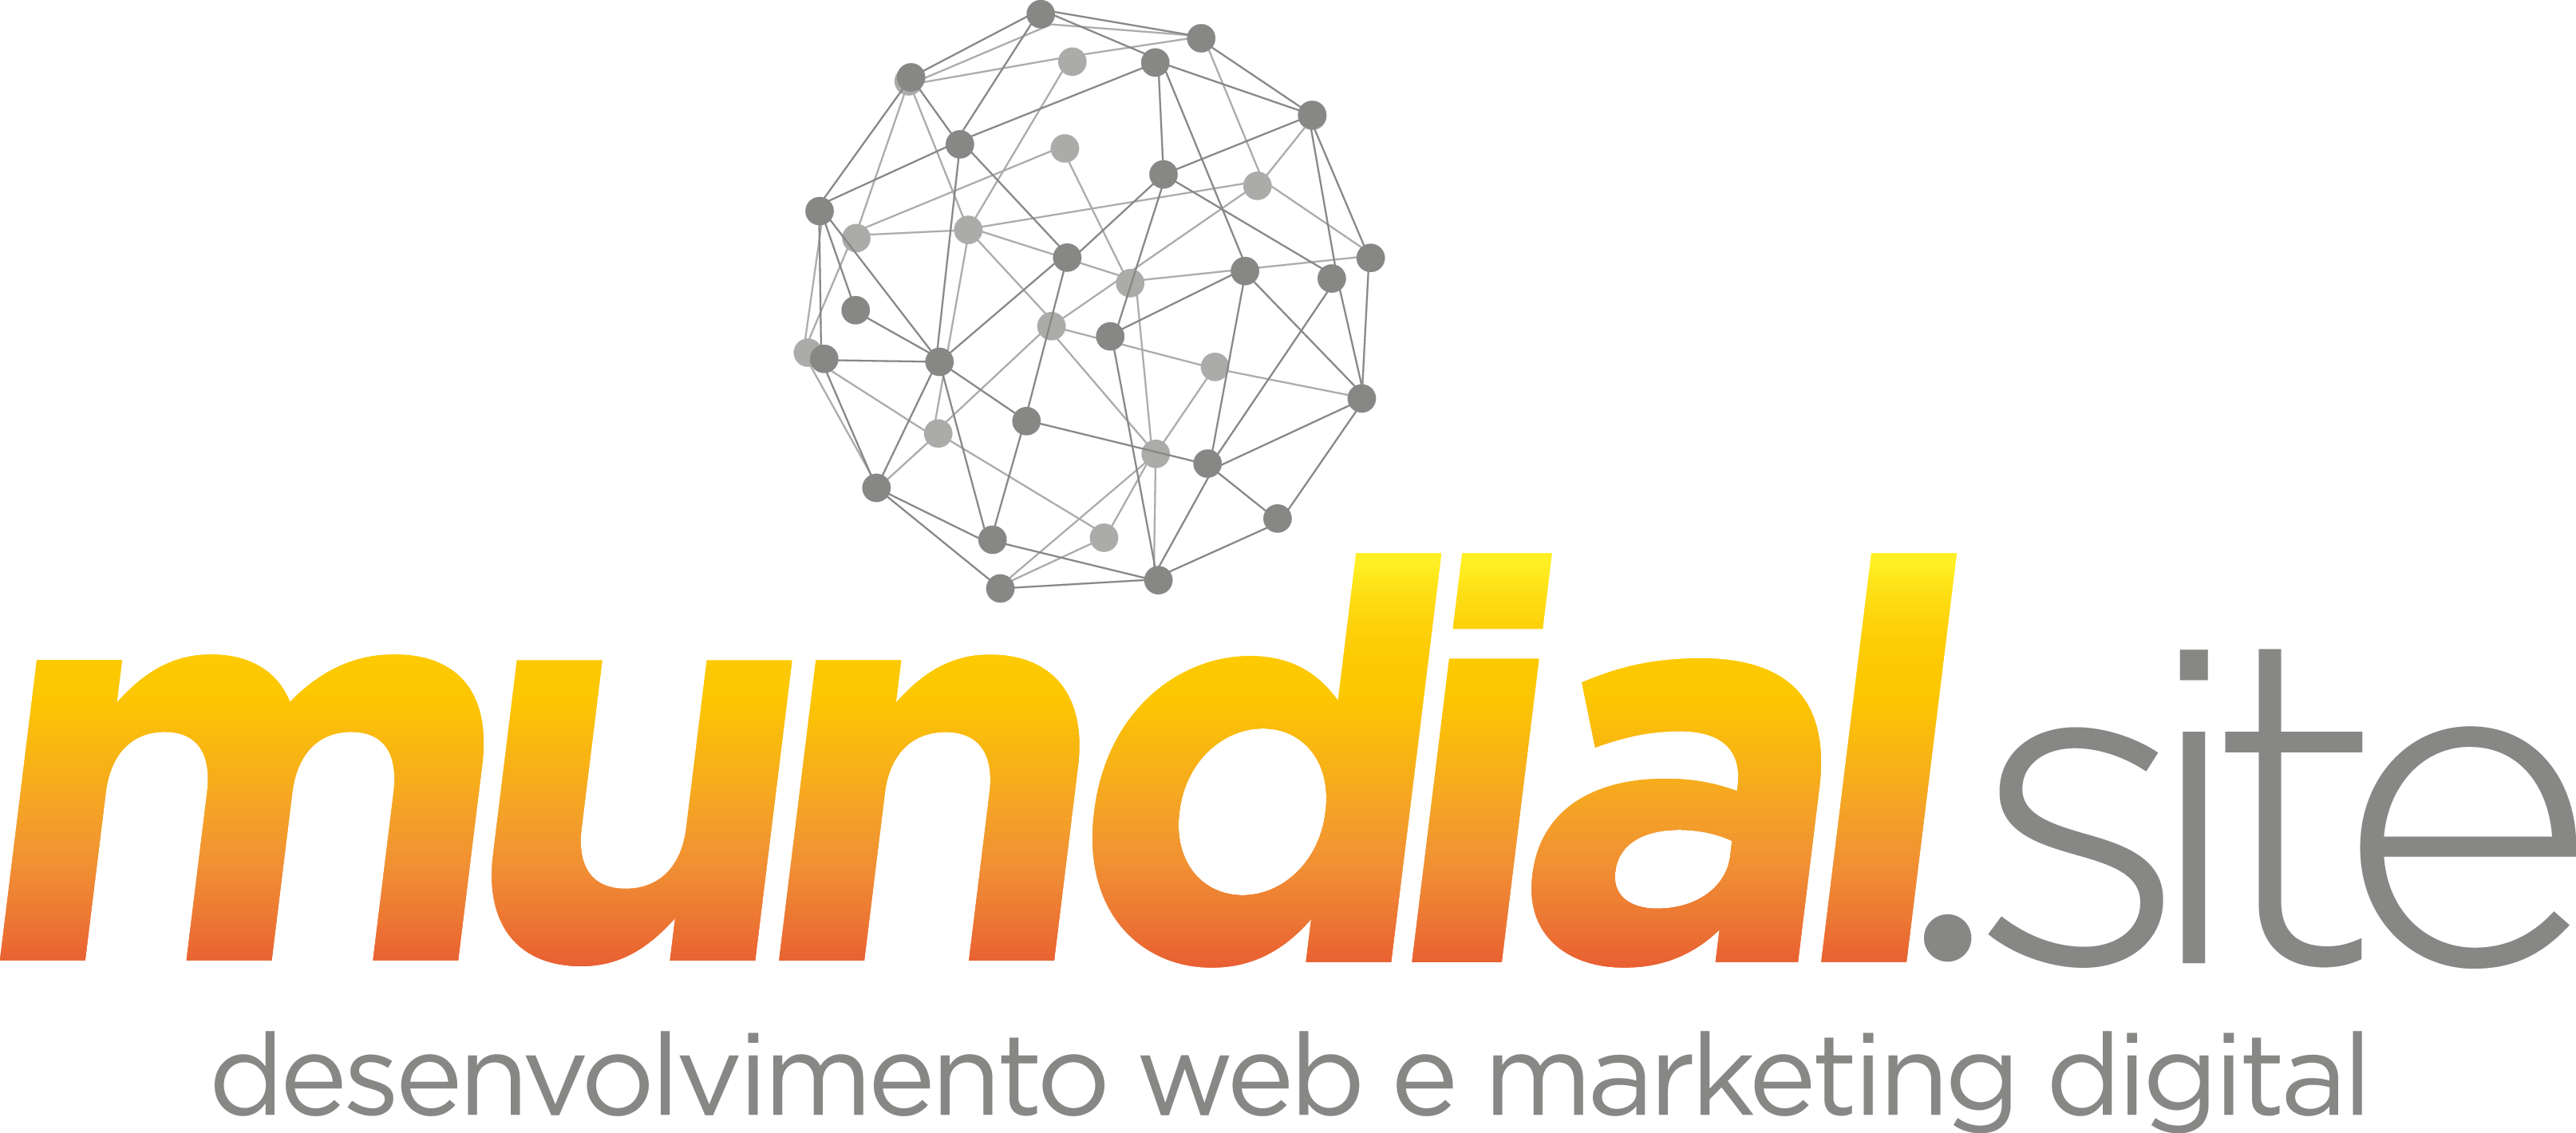 Mundial Sites | Desenvolvimento Web e Marketing Digital